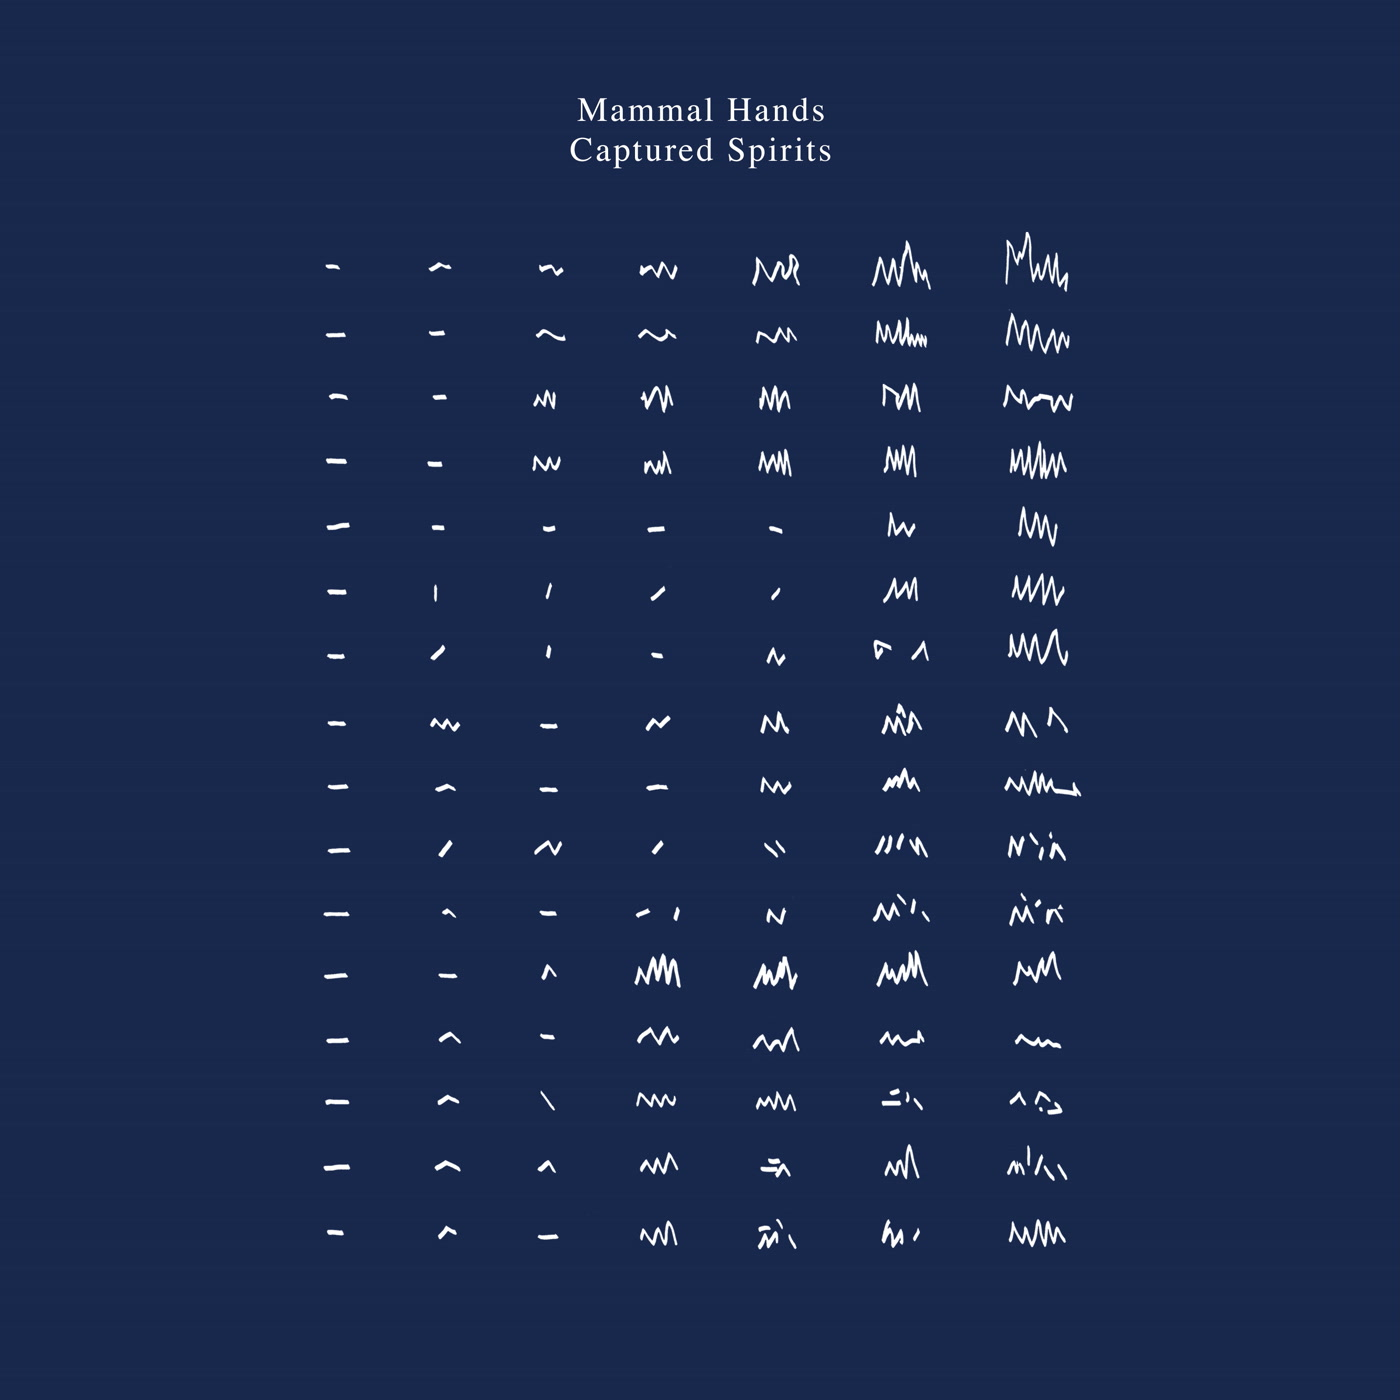 Mammal Hands – Captured Spirits (Gondwana Records)